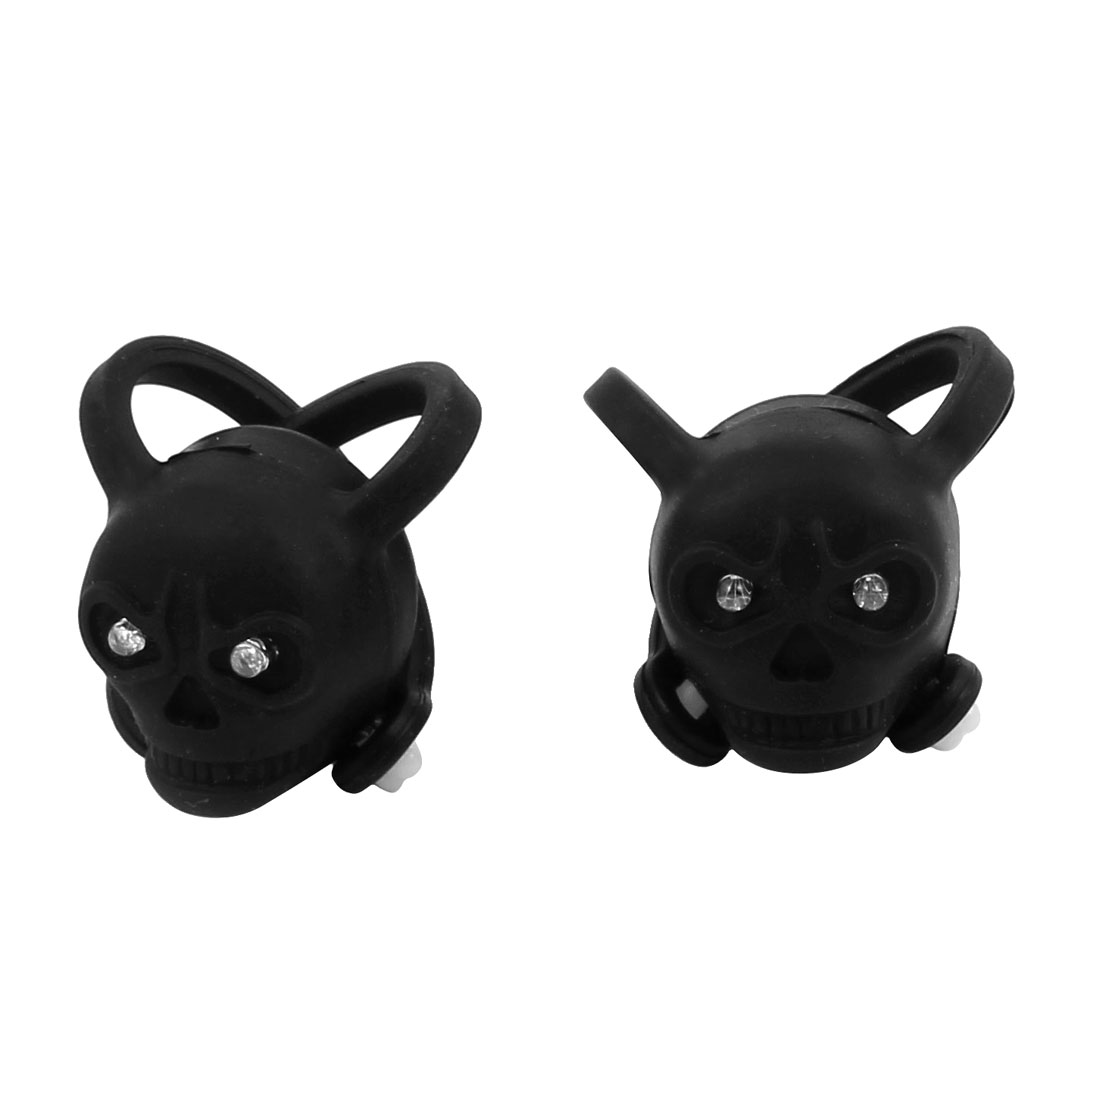 Bicycle Plastic Housing Skull Head Safety Rear Light Black 2pcs